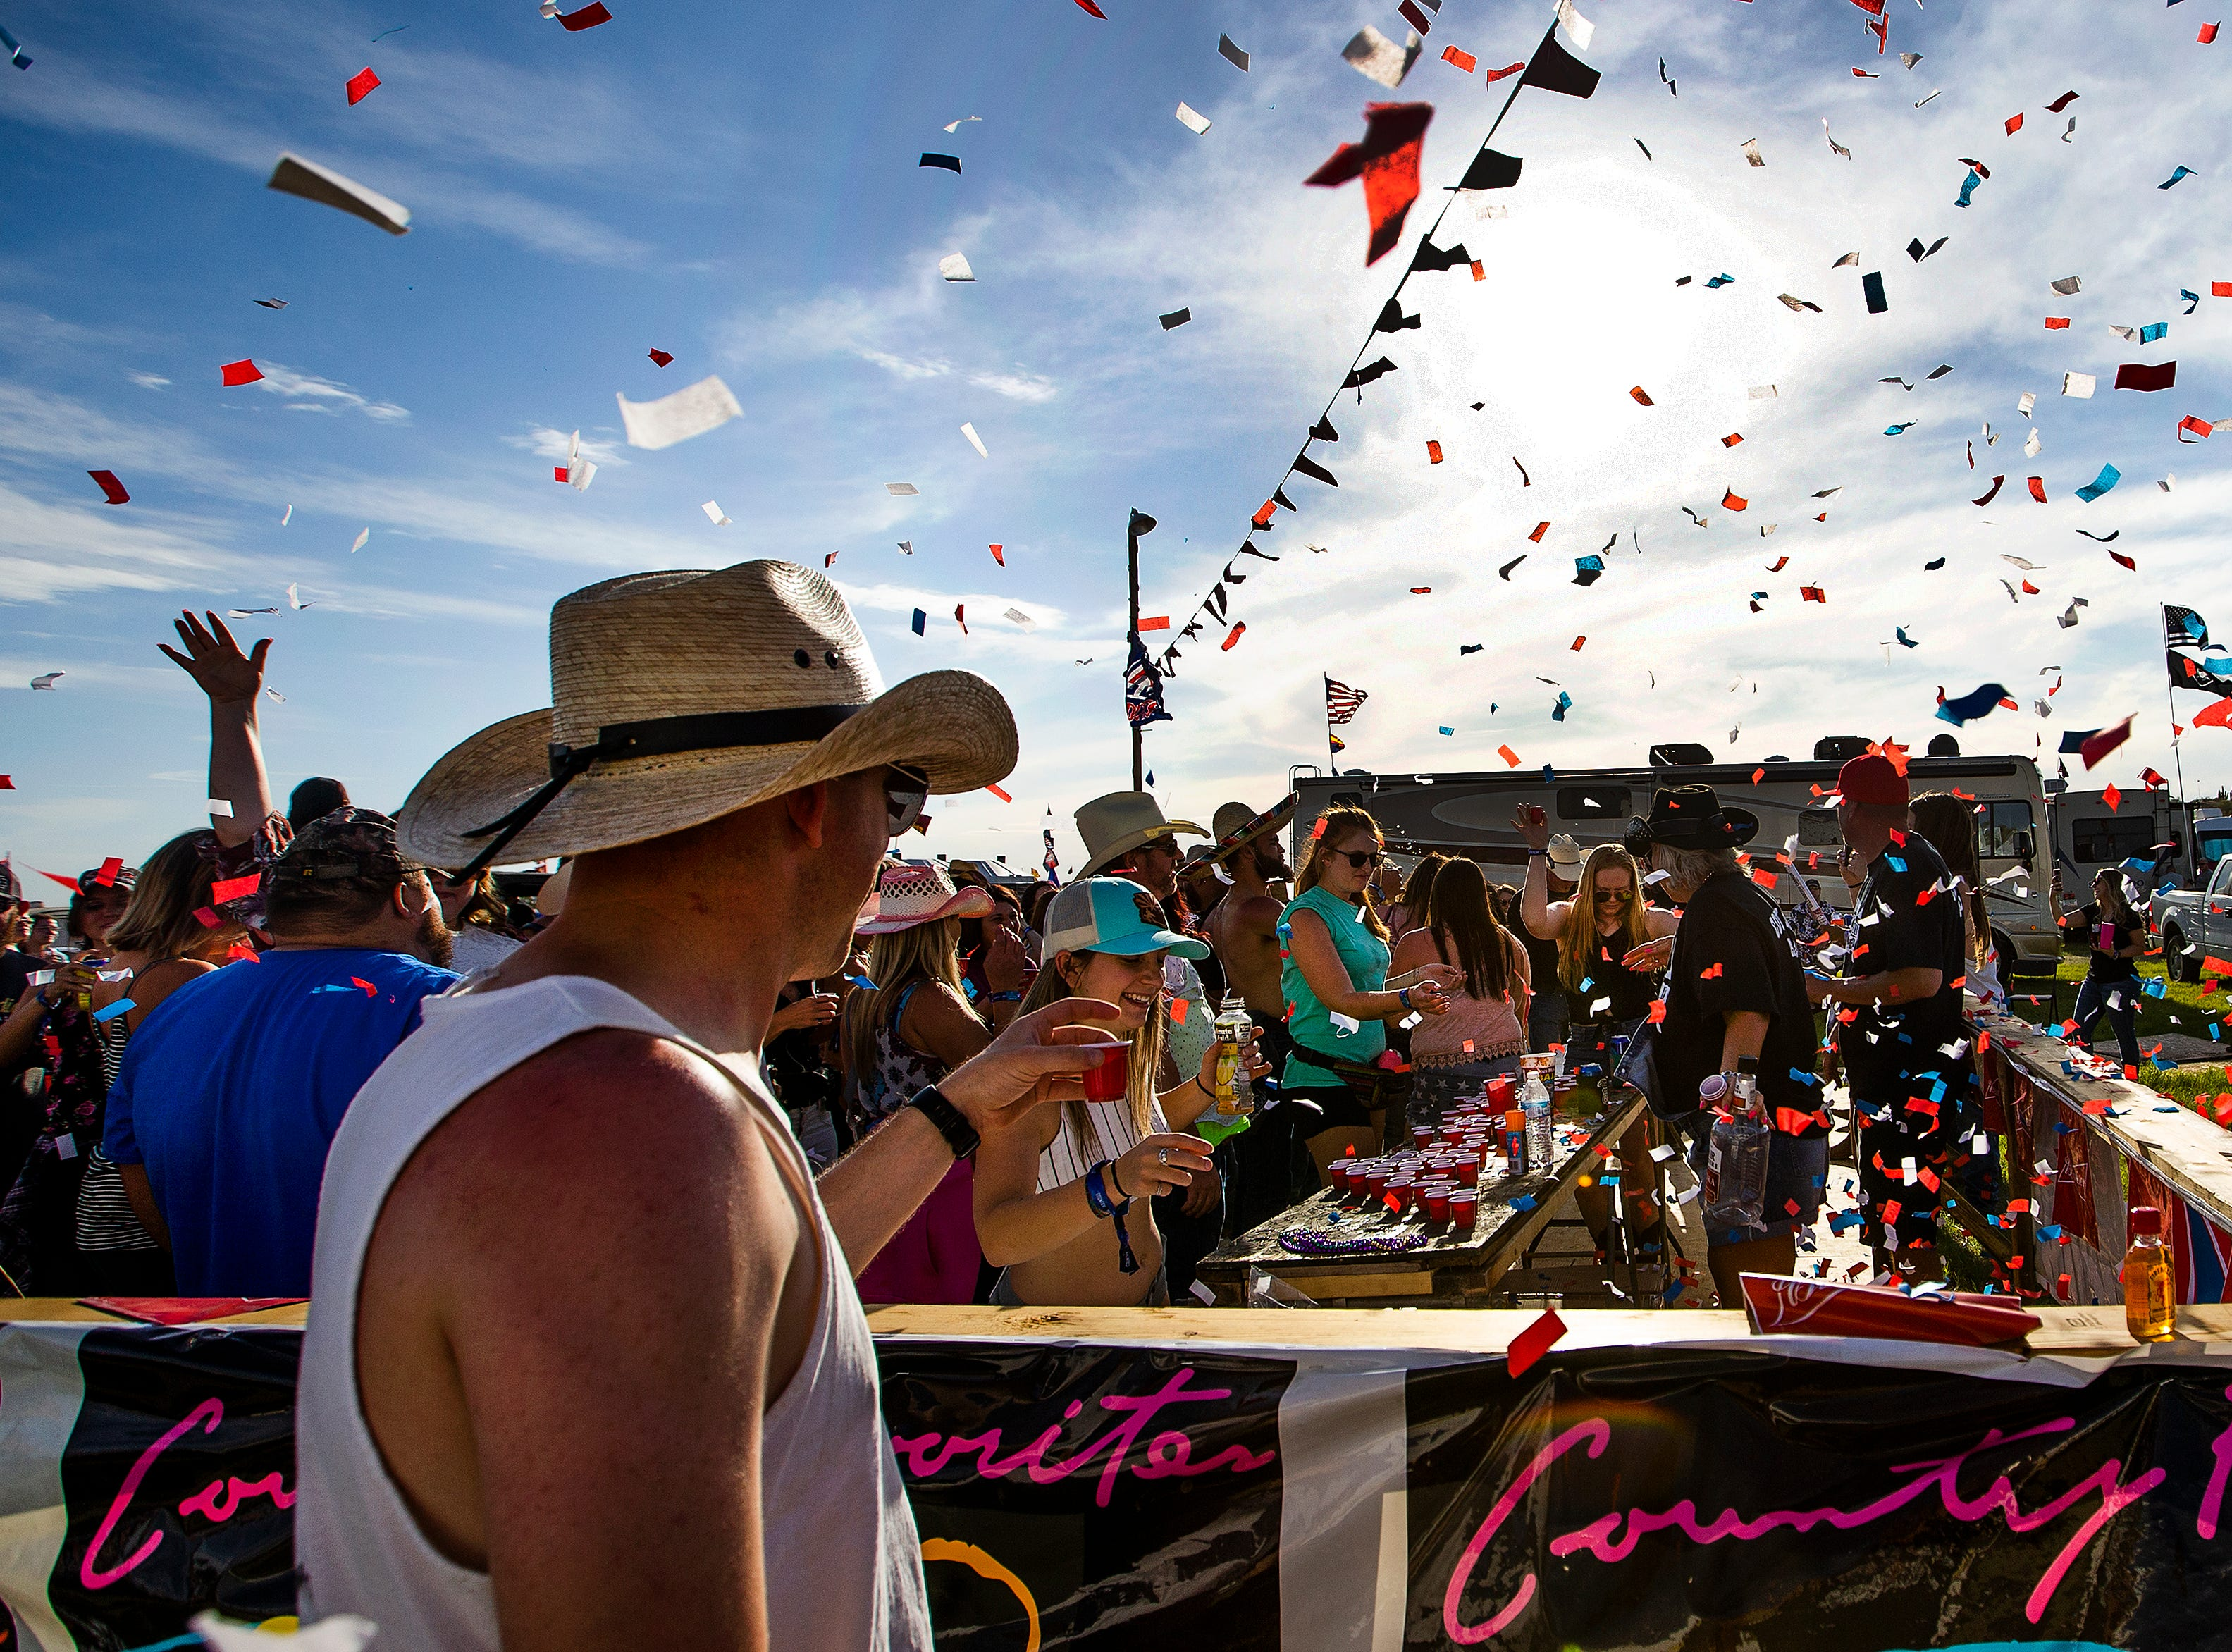 People make the first annual Country Thunder Arizona kickoff toast at Camp Burracho at the music festival, April 11, 2019.